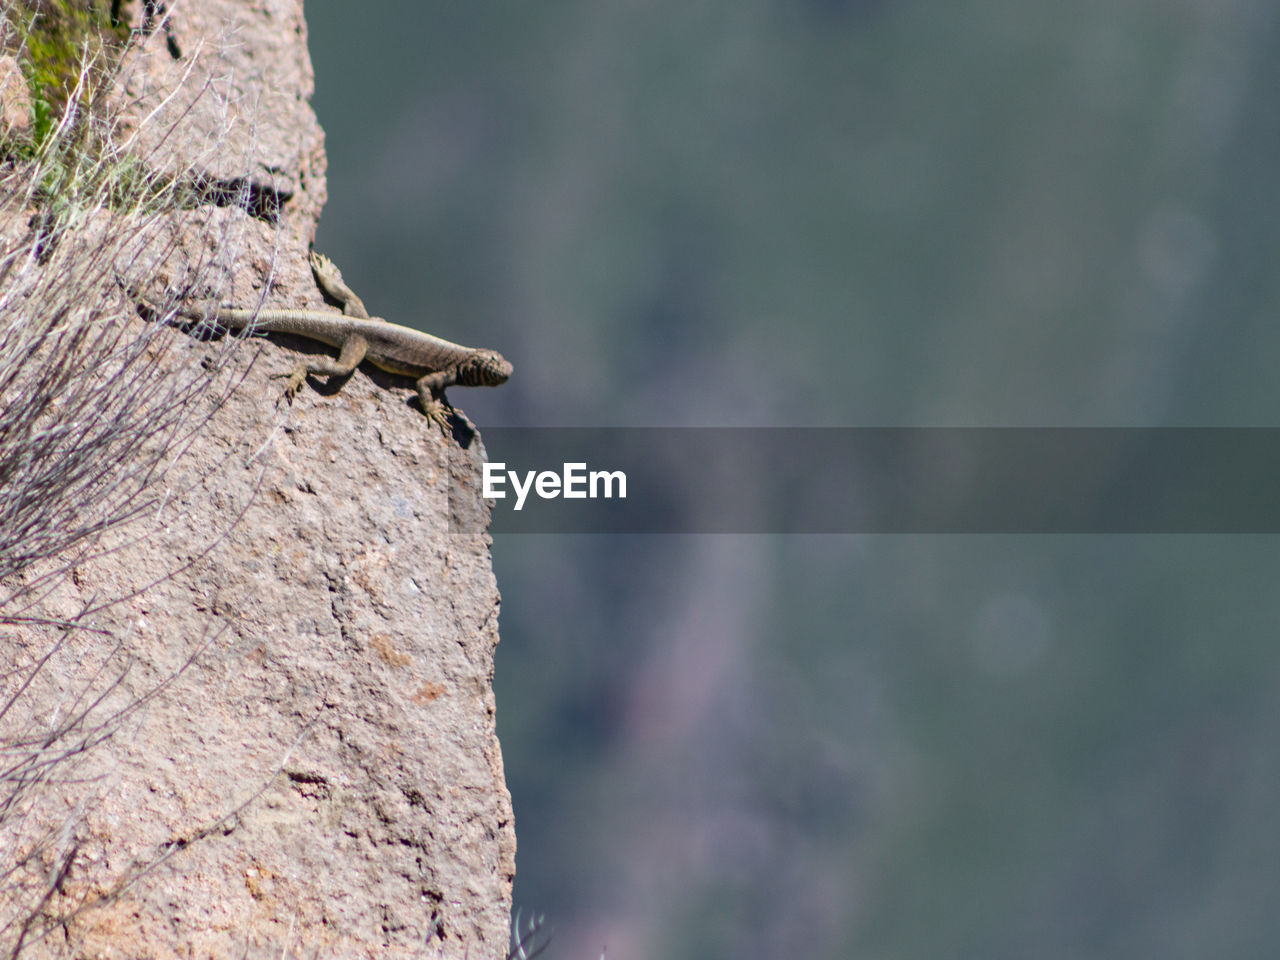 CLOSE-UP OF LIZARD ON ROCK AGAINST TREE